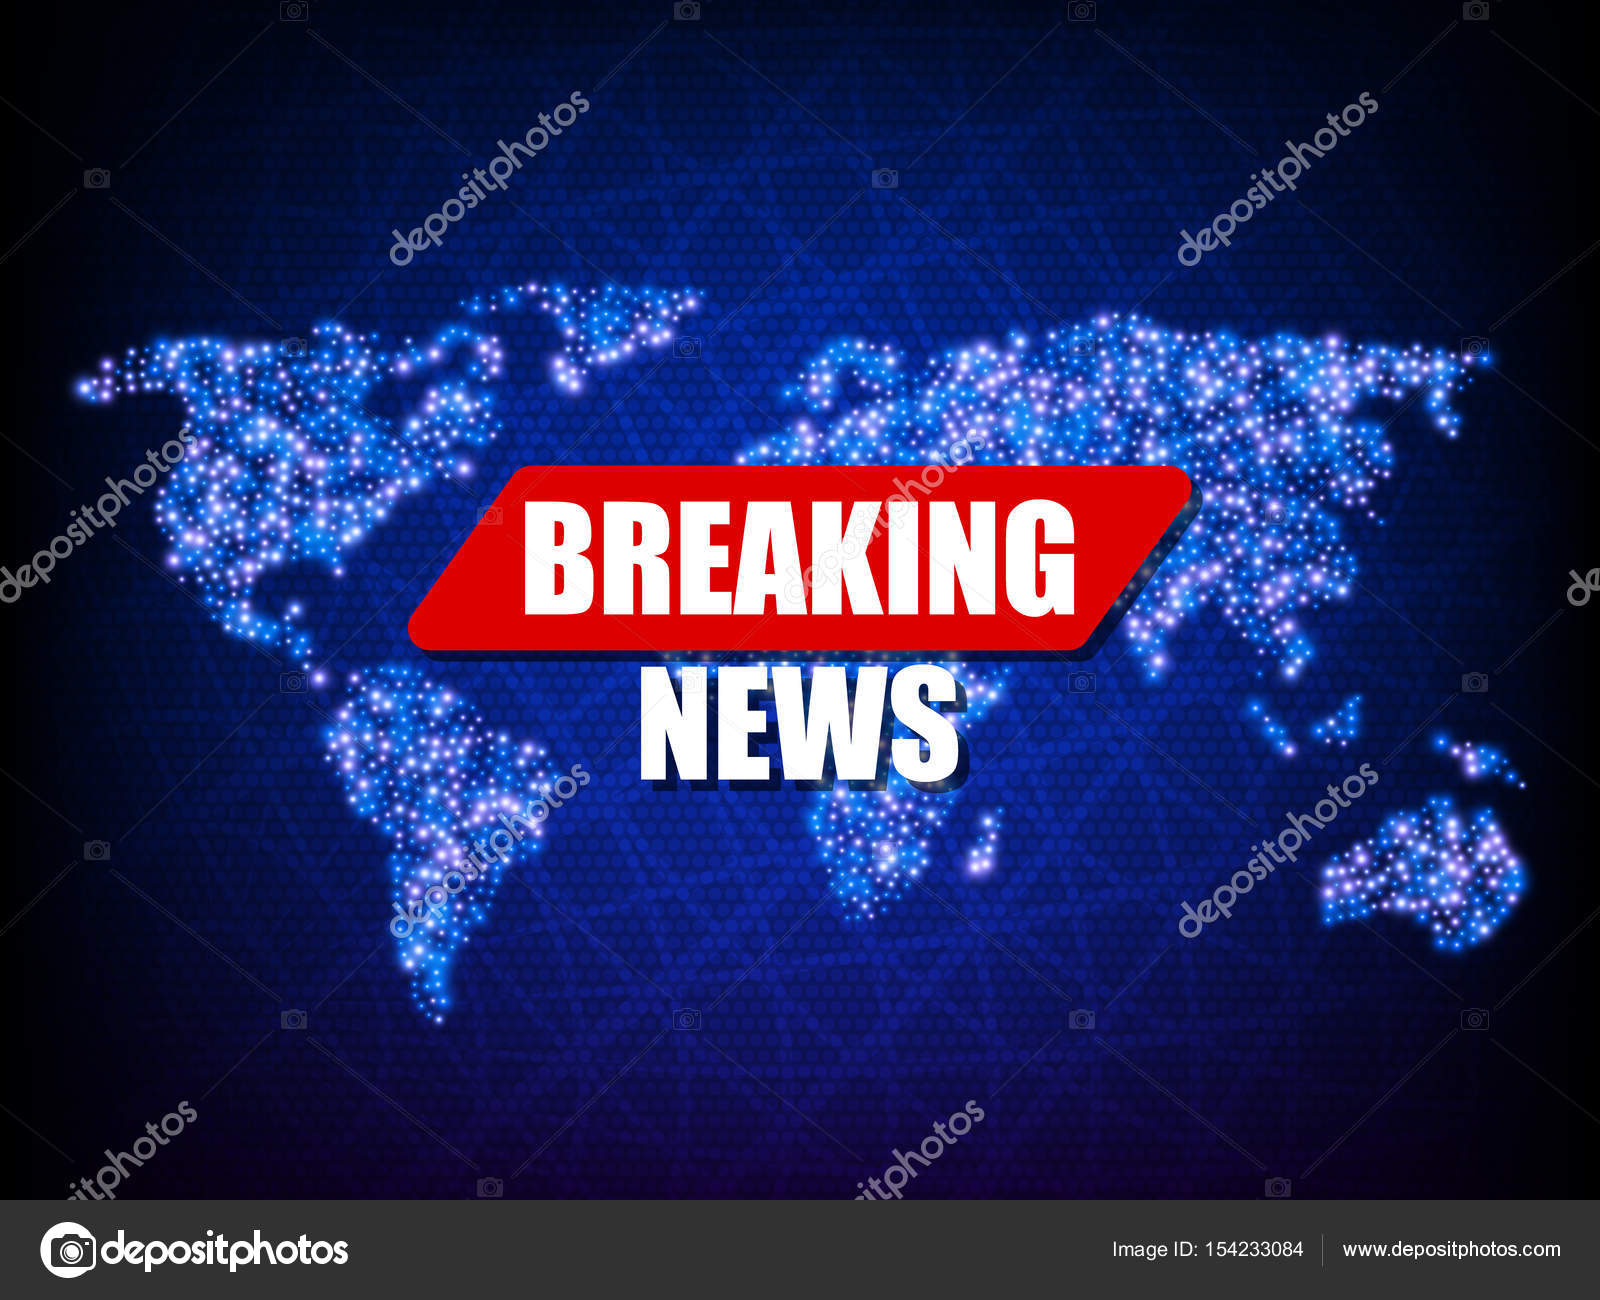 Breaking news background world map vector illustration stock breaking news background world map vector illustration eps10 vector by mrnder gumiabroncs Image collections